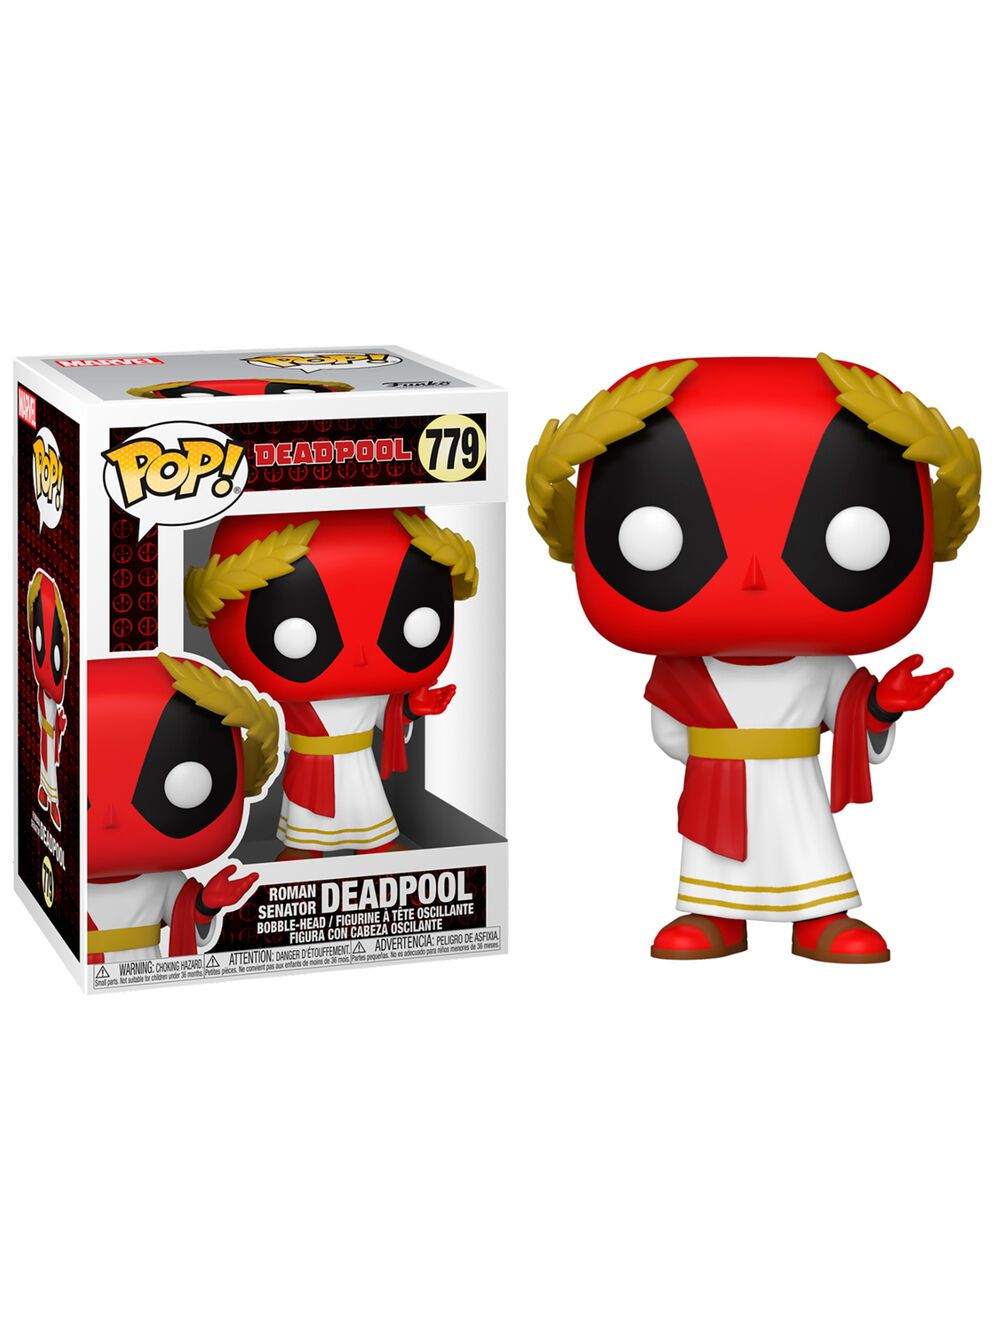 Funko POP! Deadpool 30th - Roman Senator Deadpool Vinyl figura 10cm